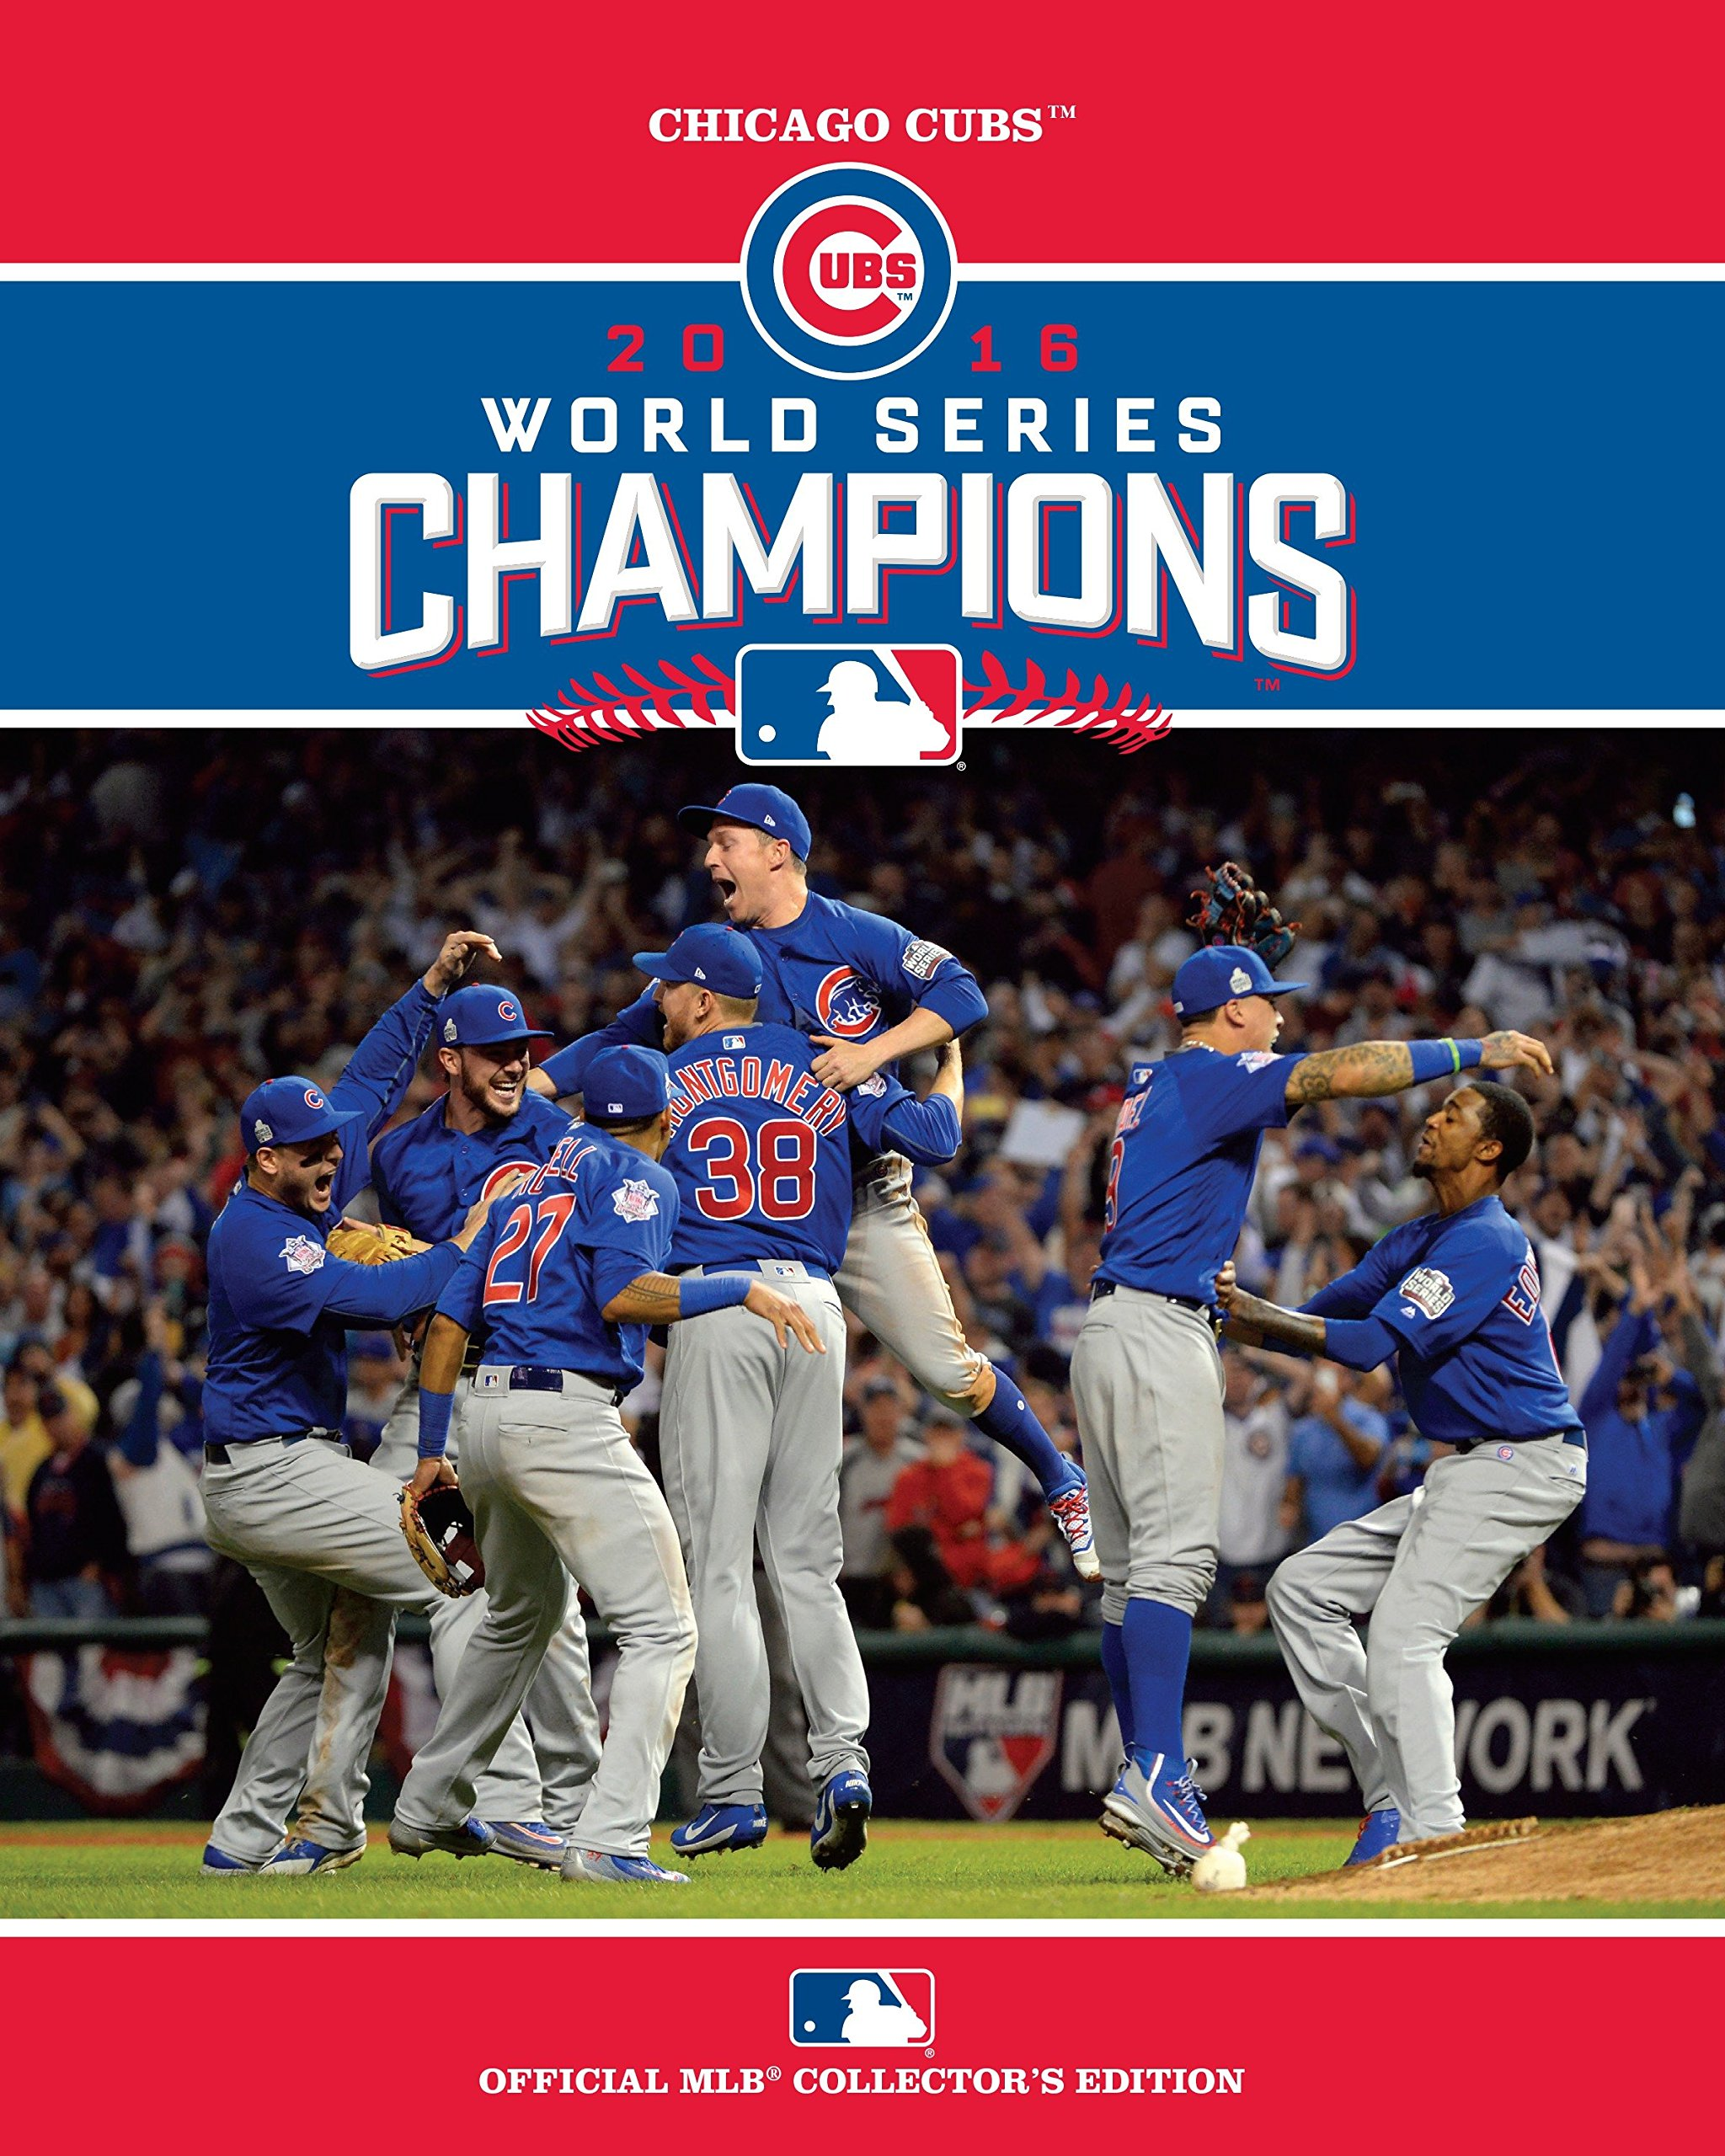 Chicago Cubs celebrating their 2016 World Series Championship to end the 108 year drought.